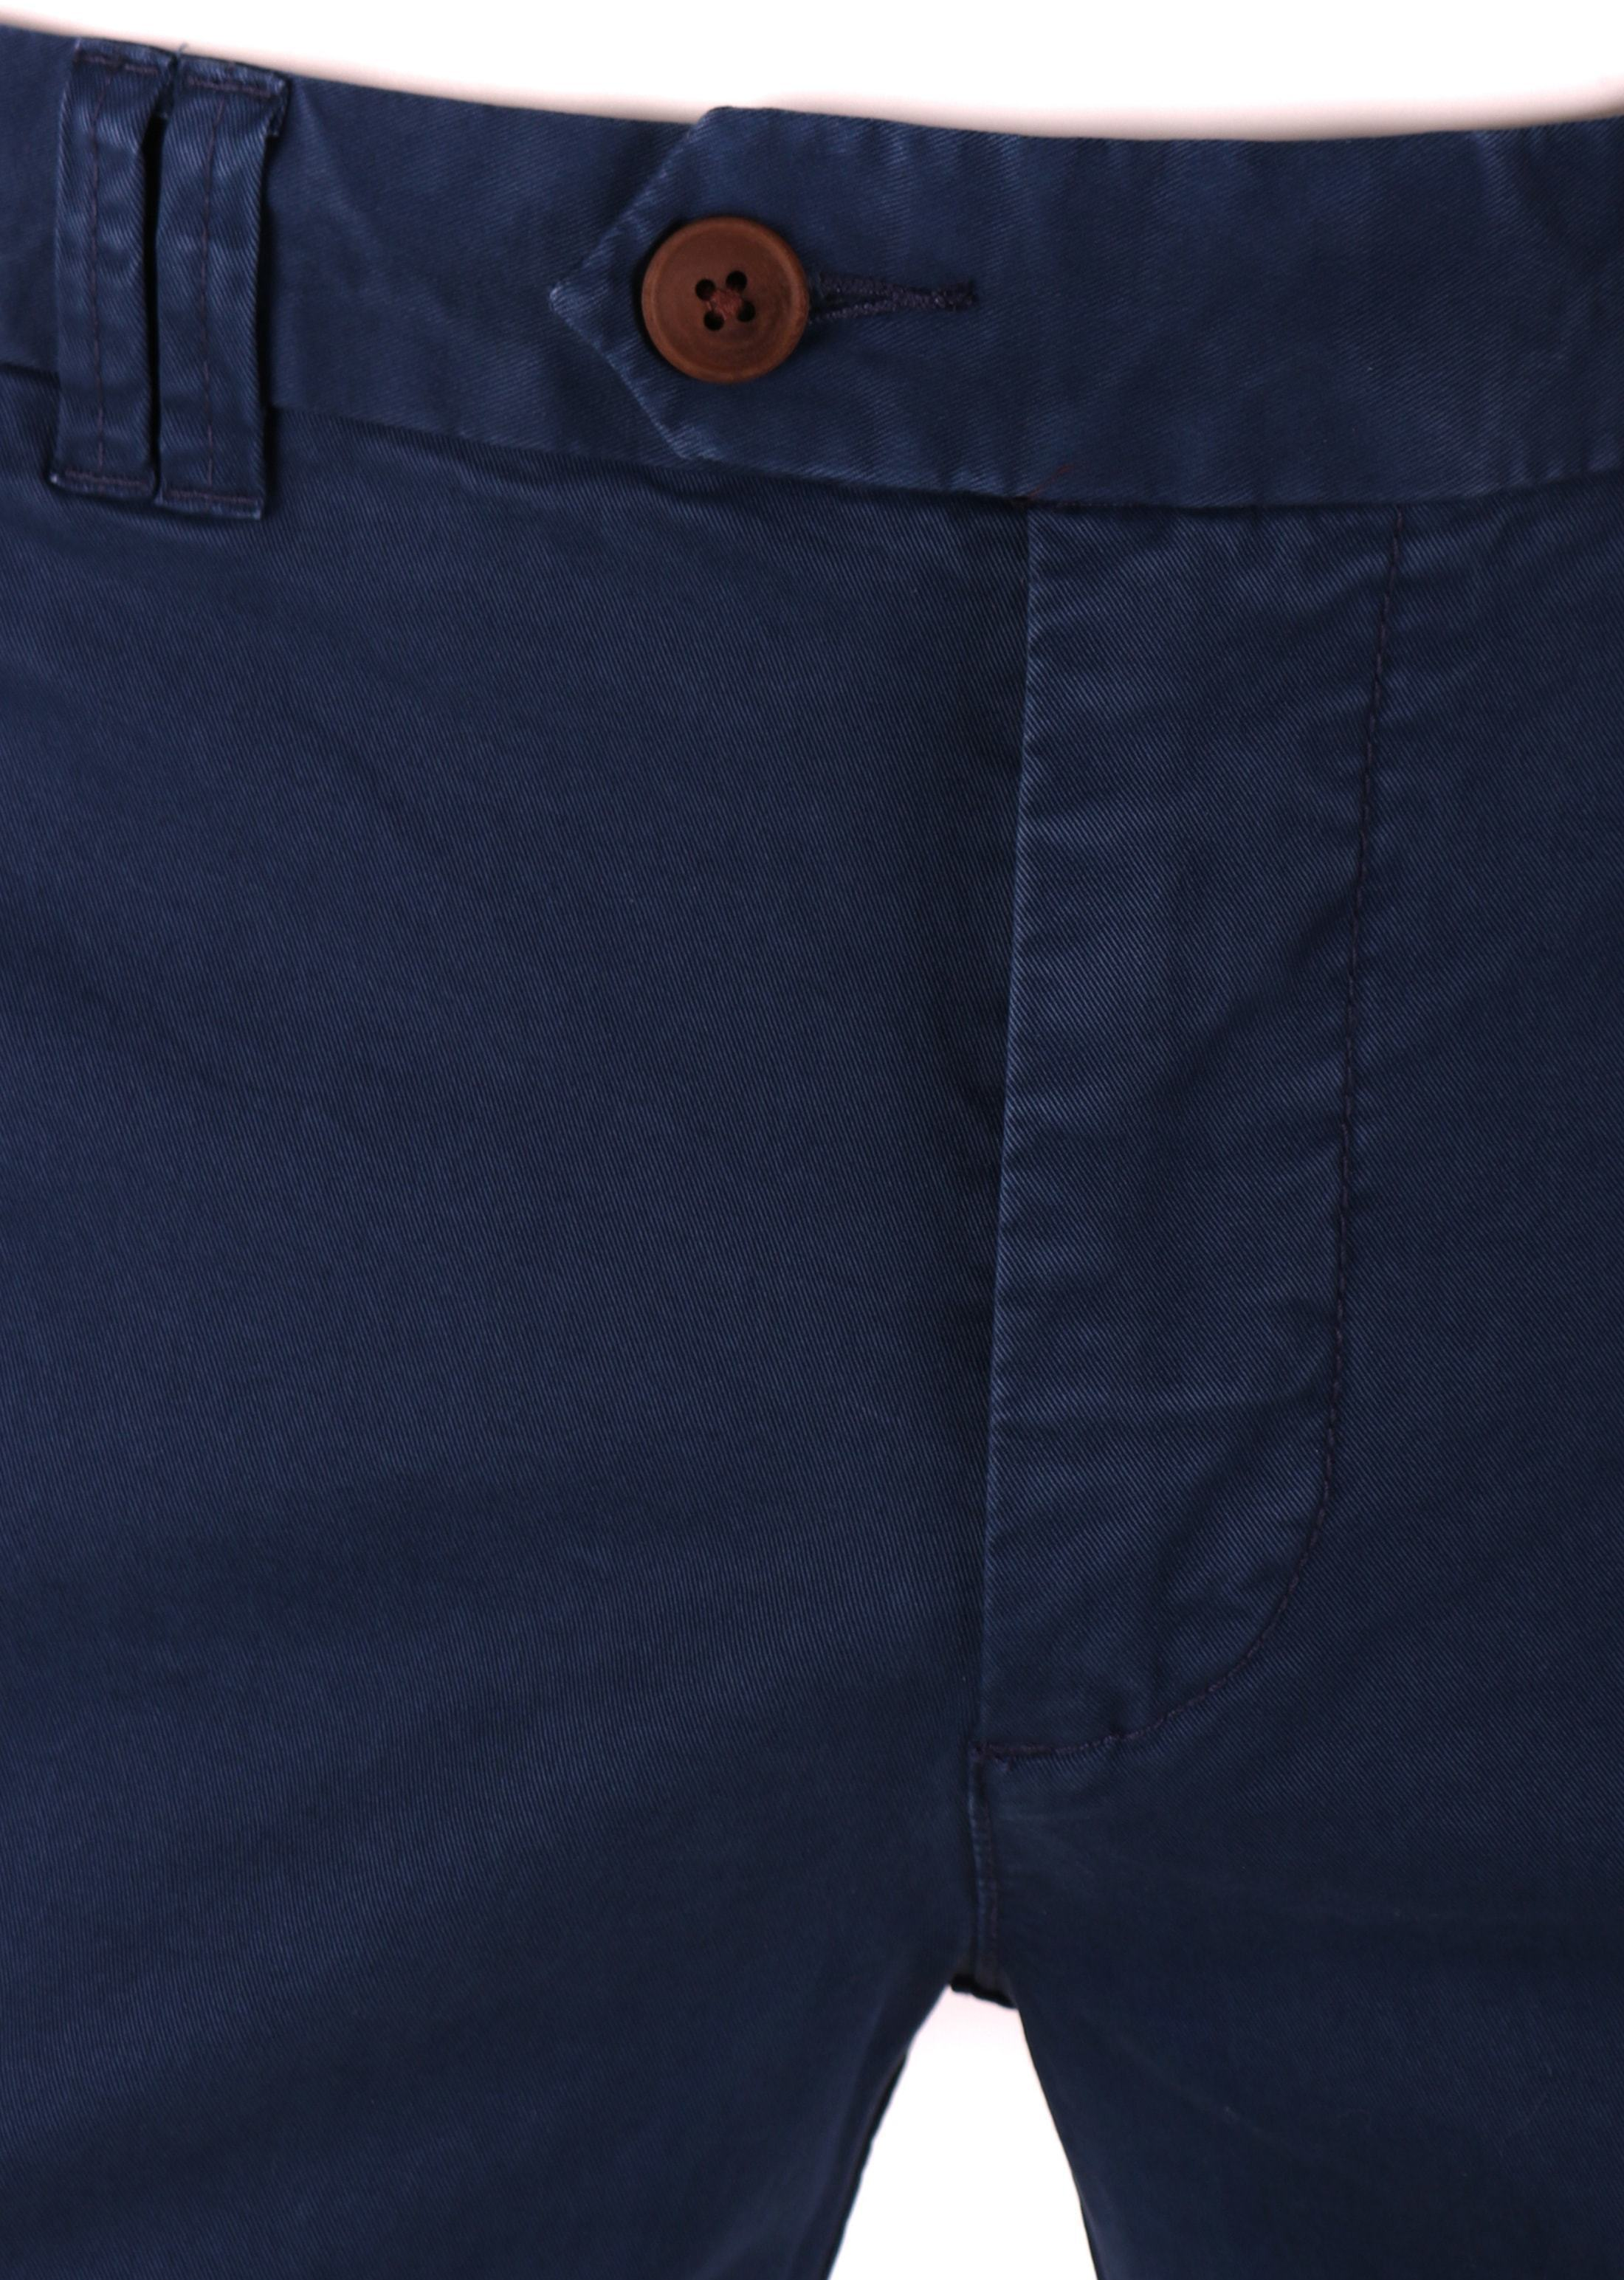 Suitable Chino Trousers Dark Blue foto 2